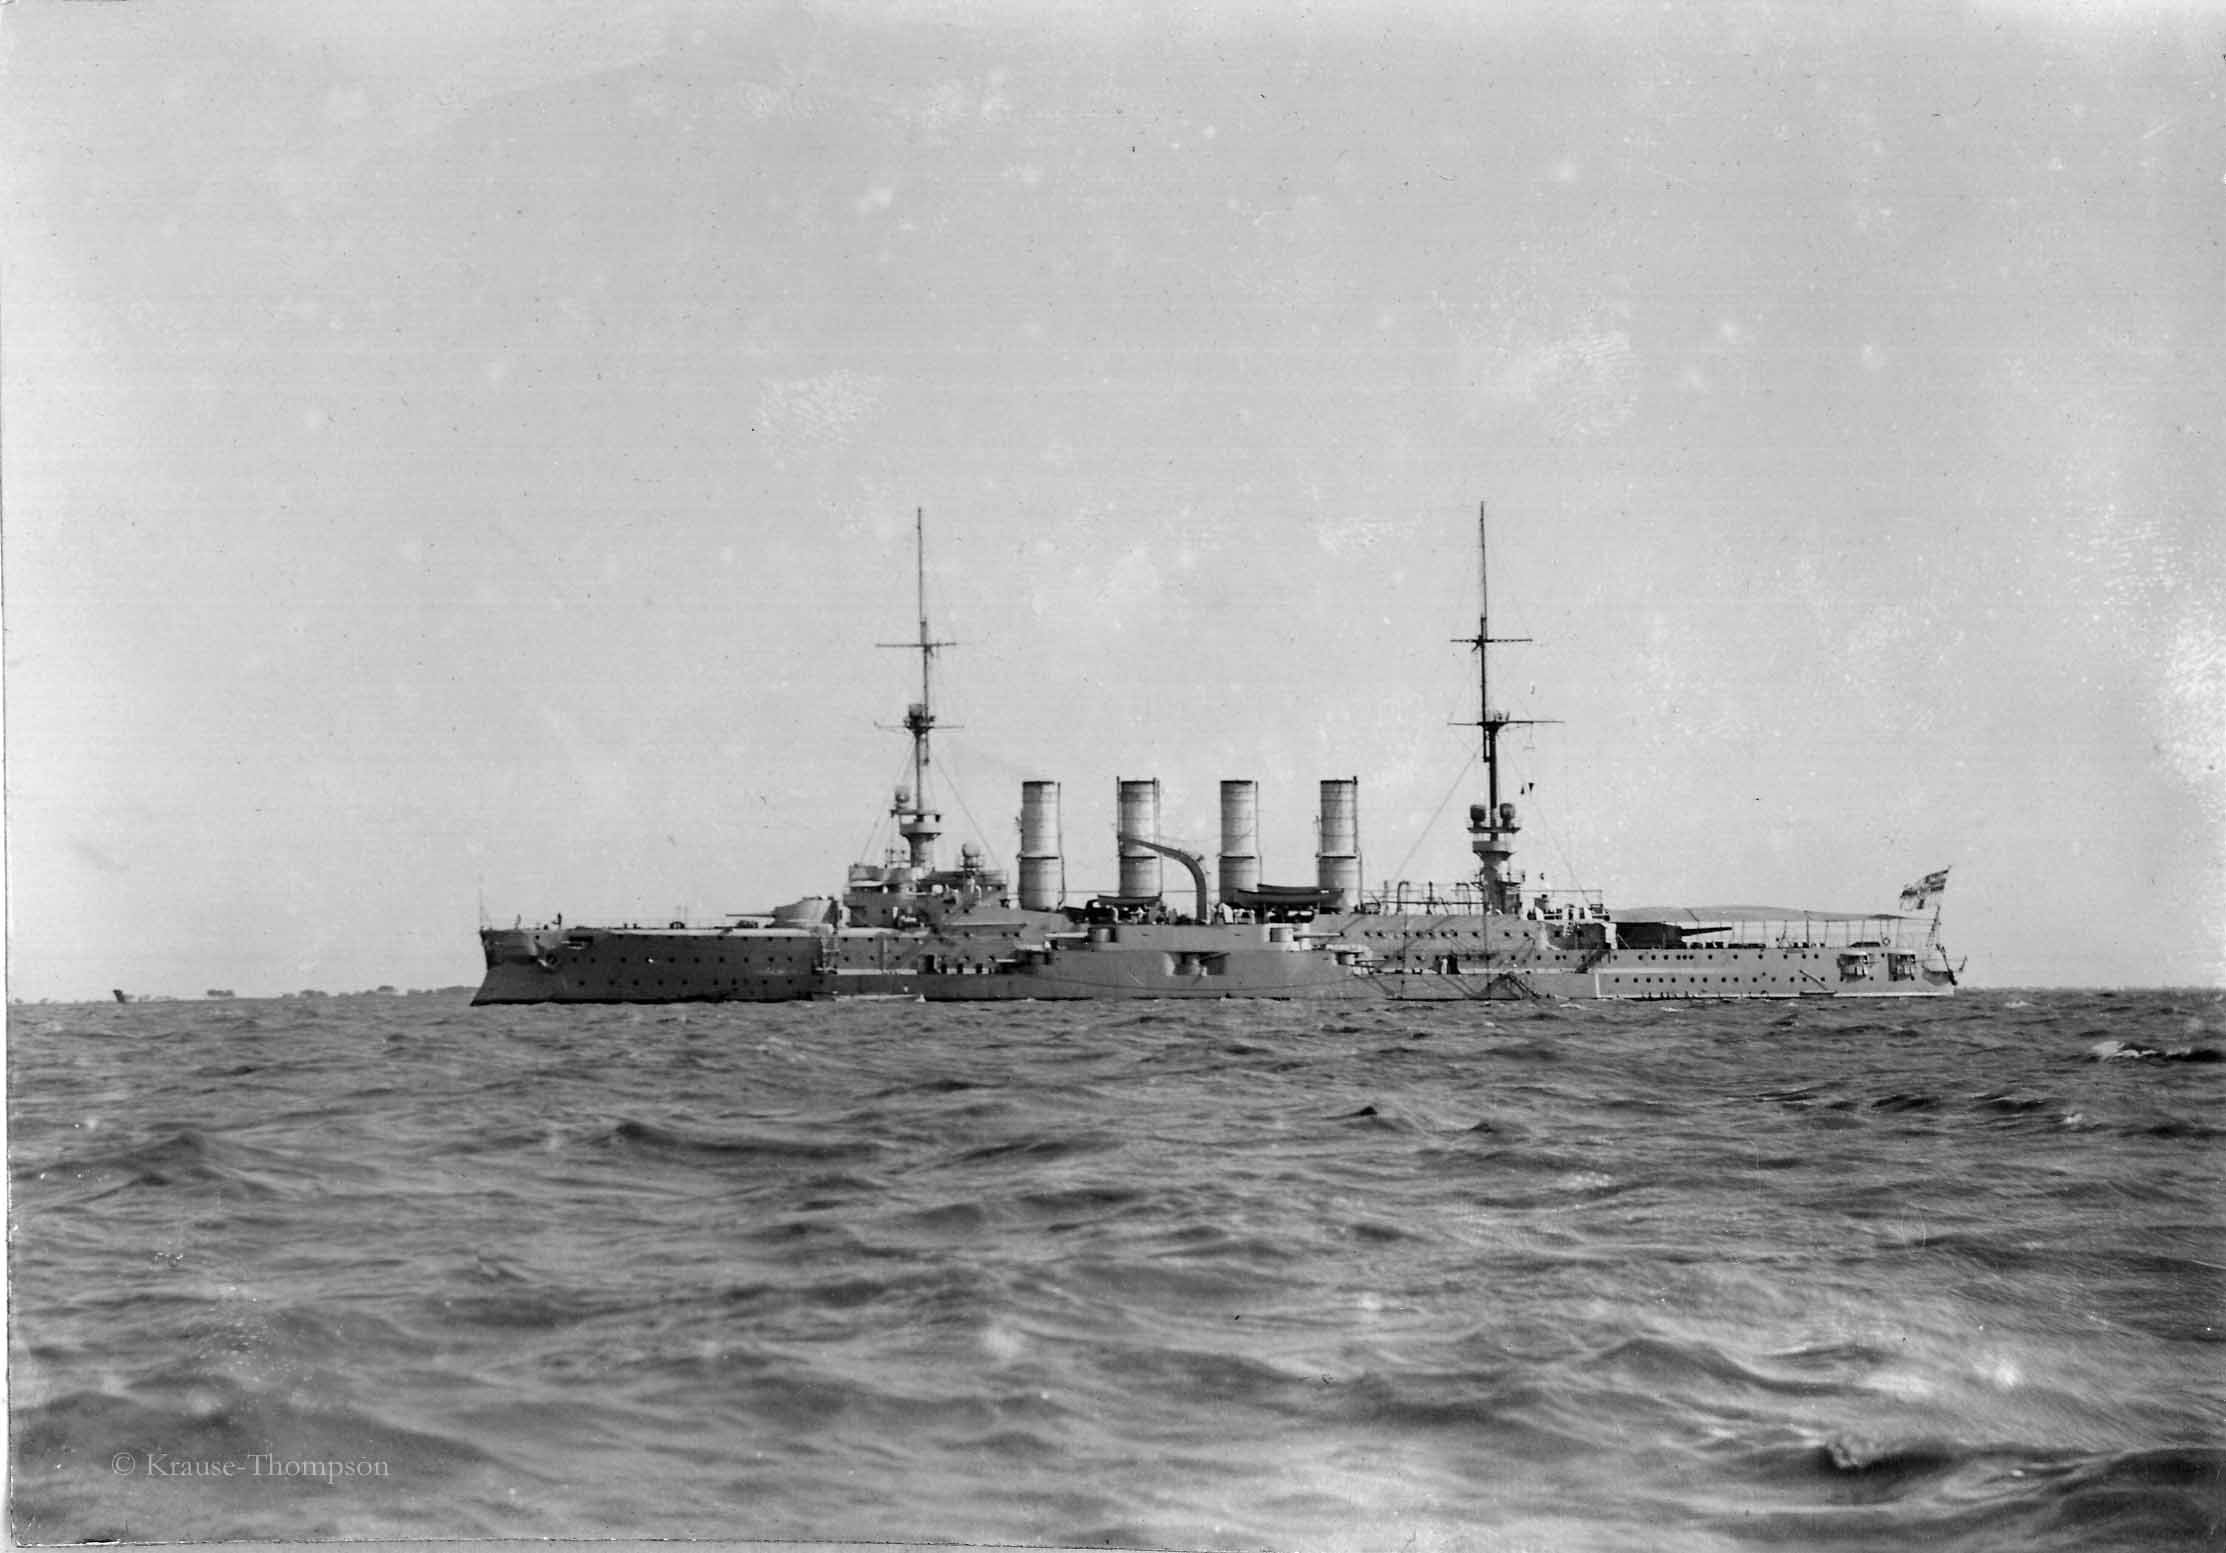 SMS Gneisenau, armored cruiser of the German navy